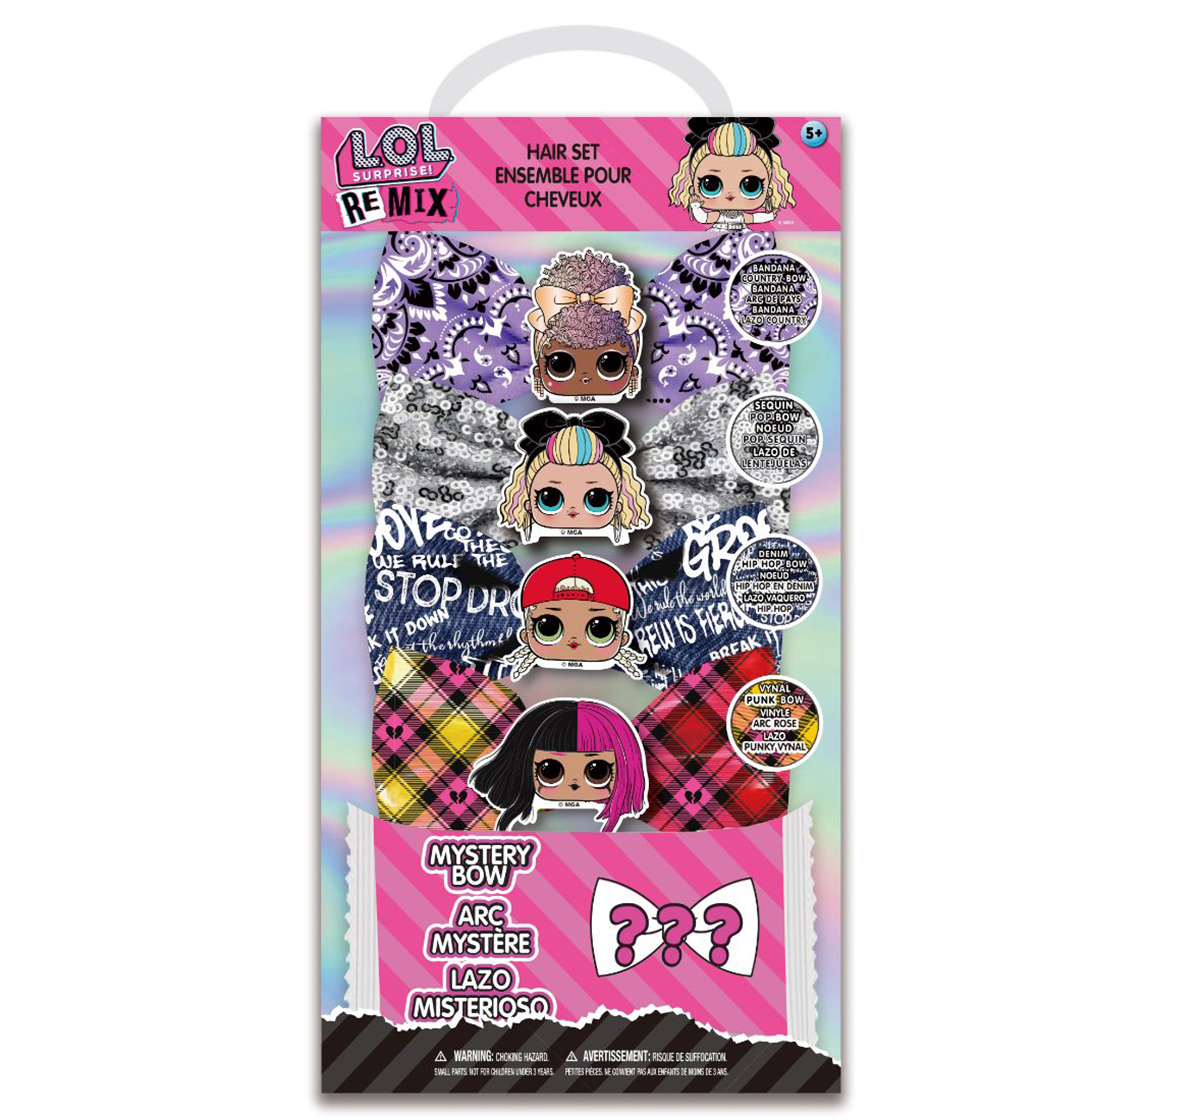 Townley Girl | NE LOL Hair Accessories with Hair Bow for Girls age 5Y+